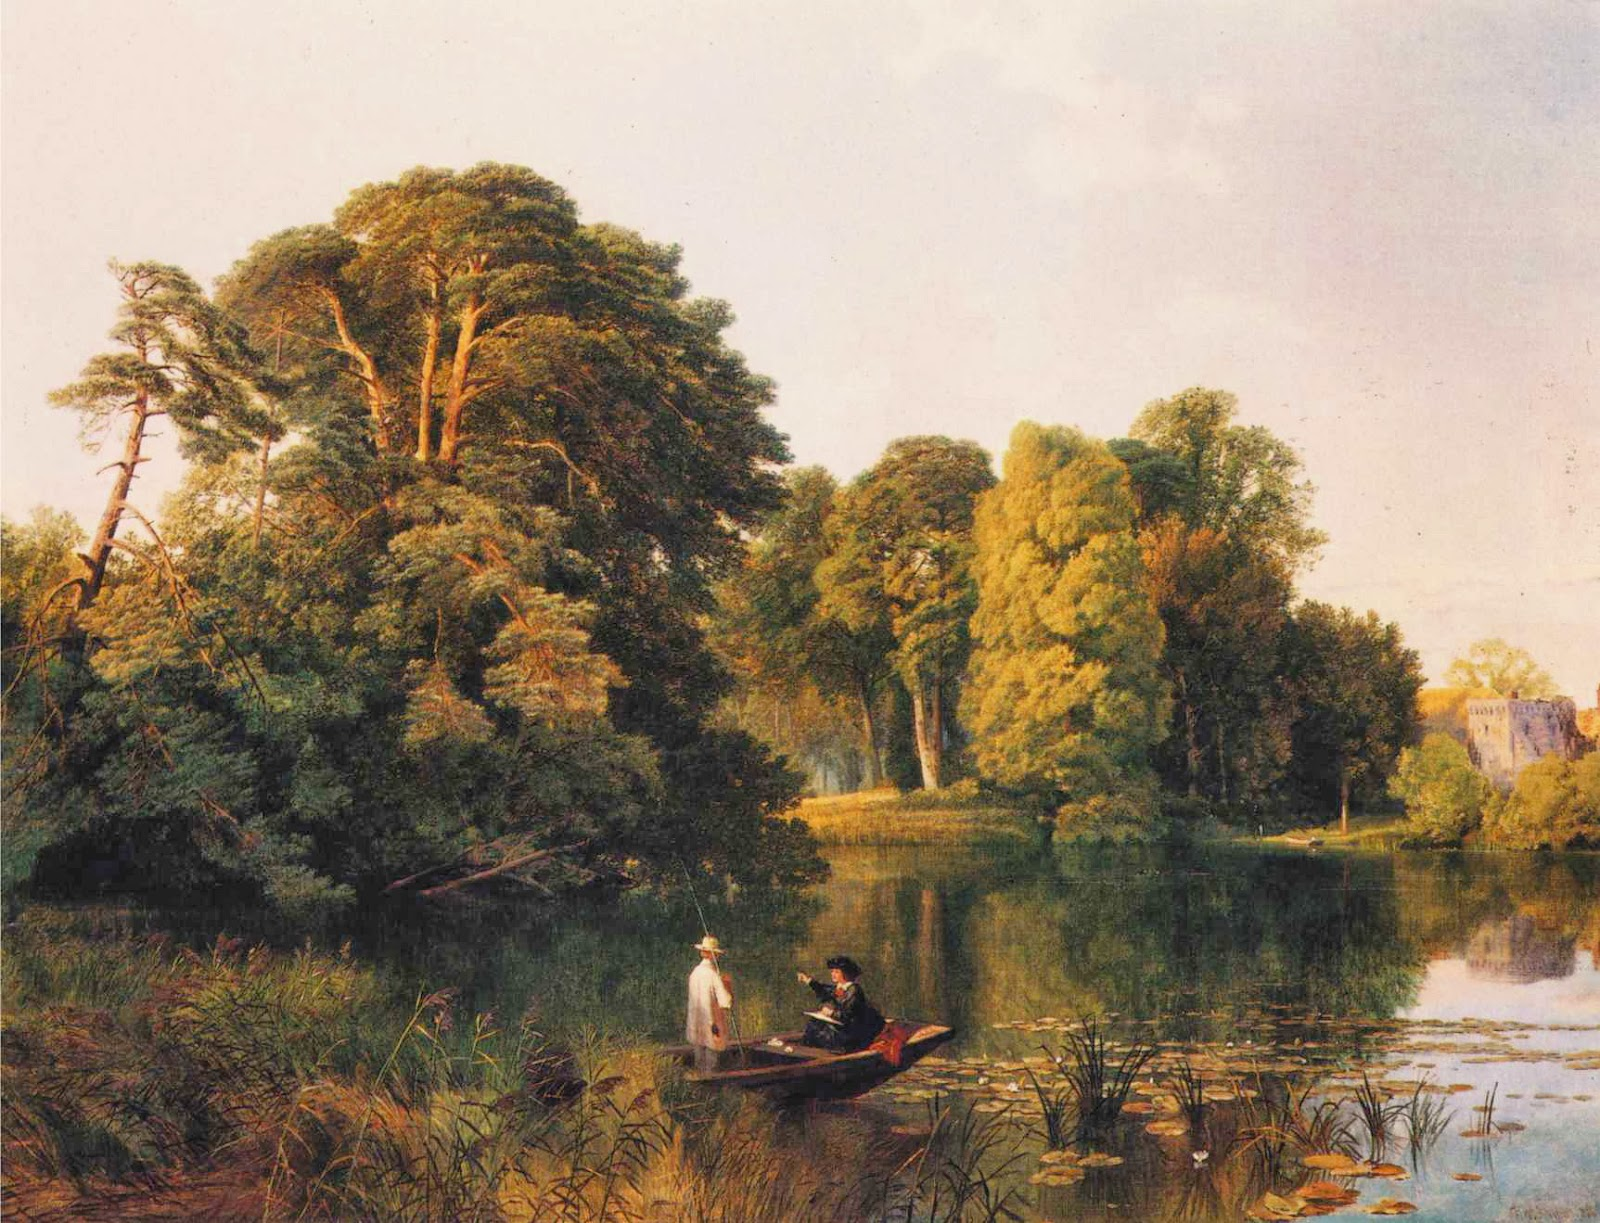 Frederick William Hulme, A Quiet Retreat, Surrey